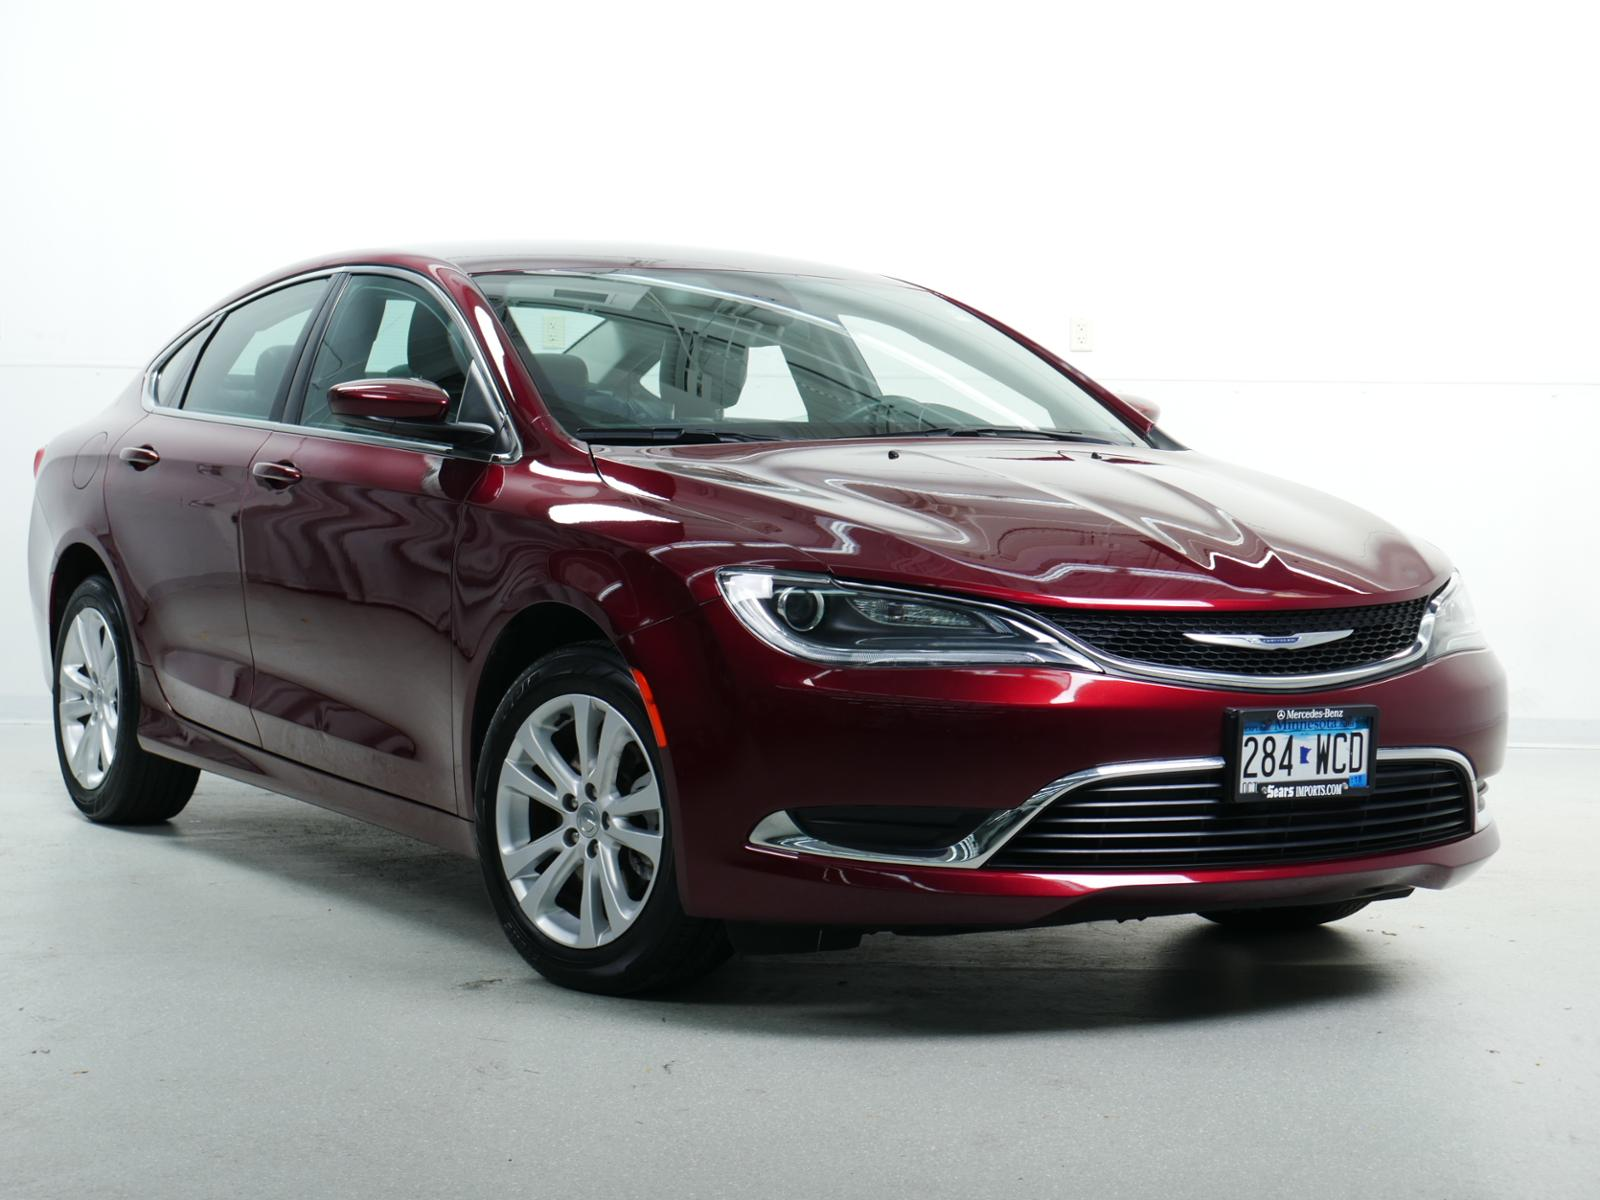 Chrysler 200: Maintenance schedules